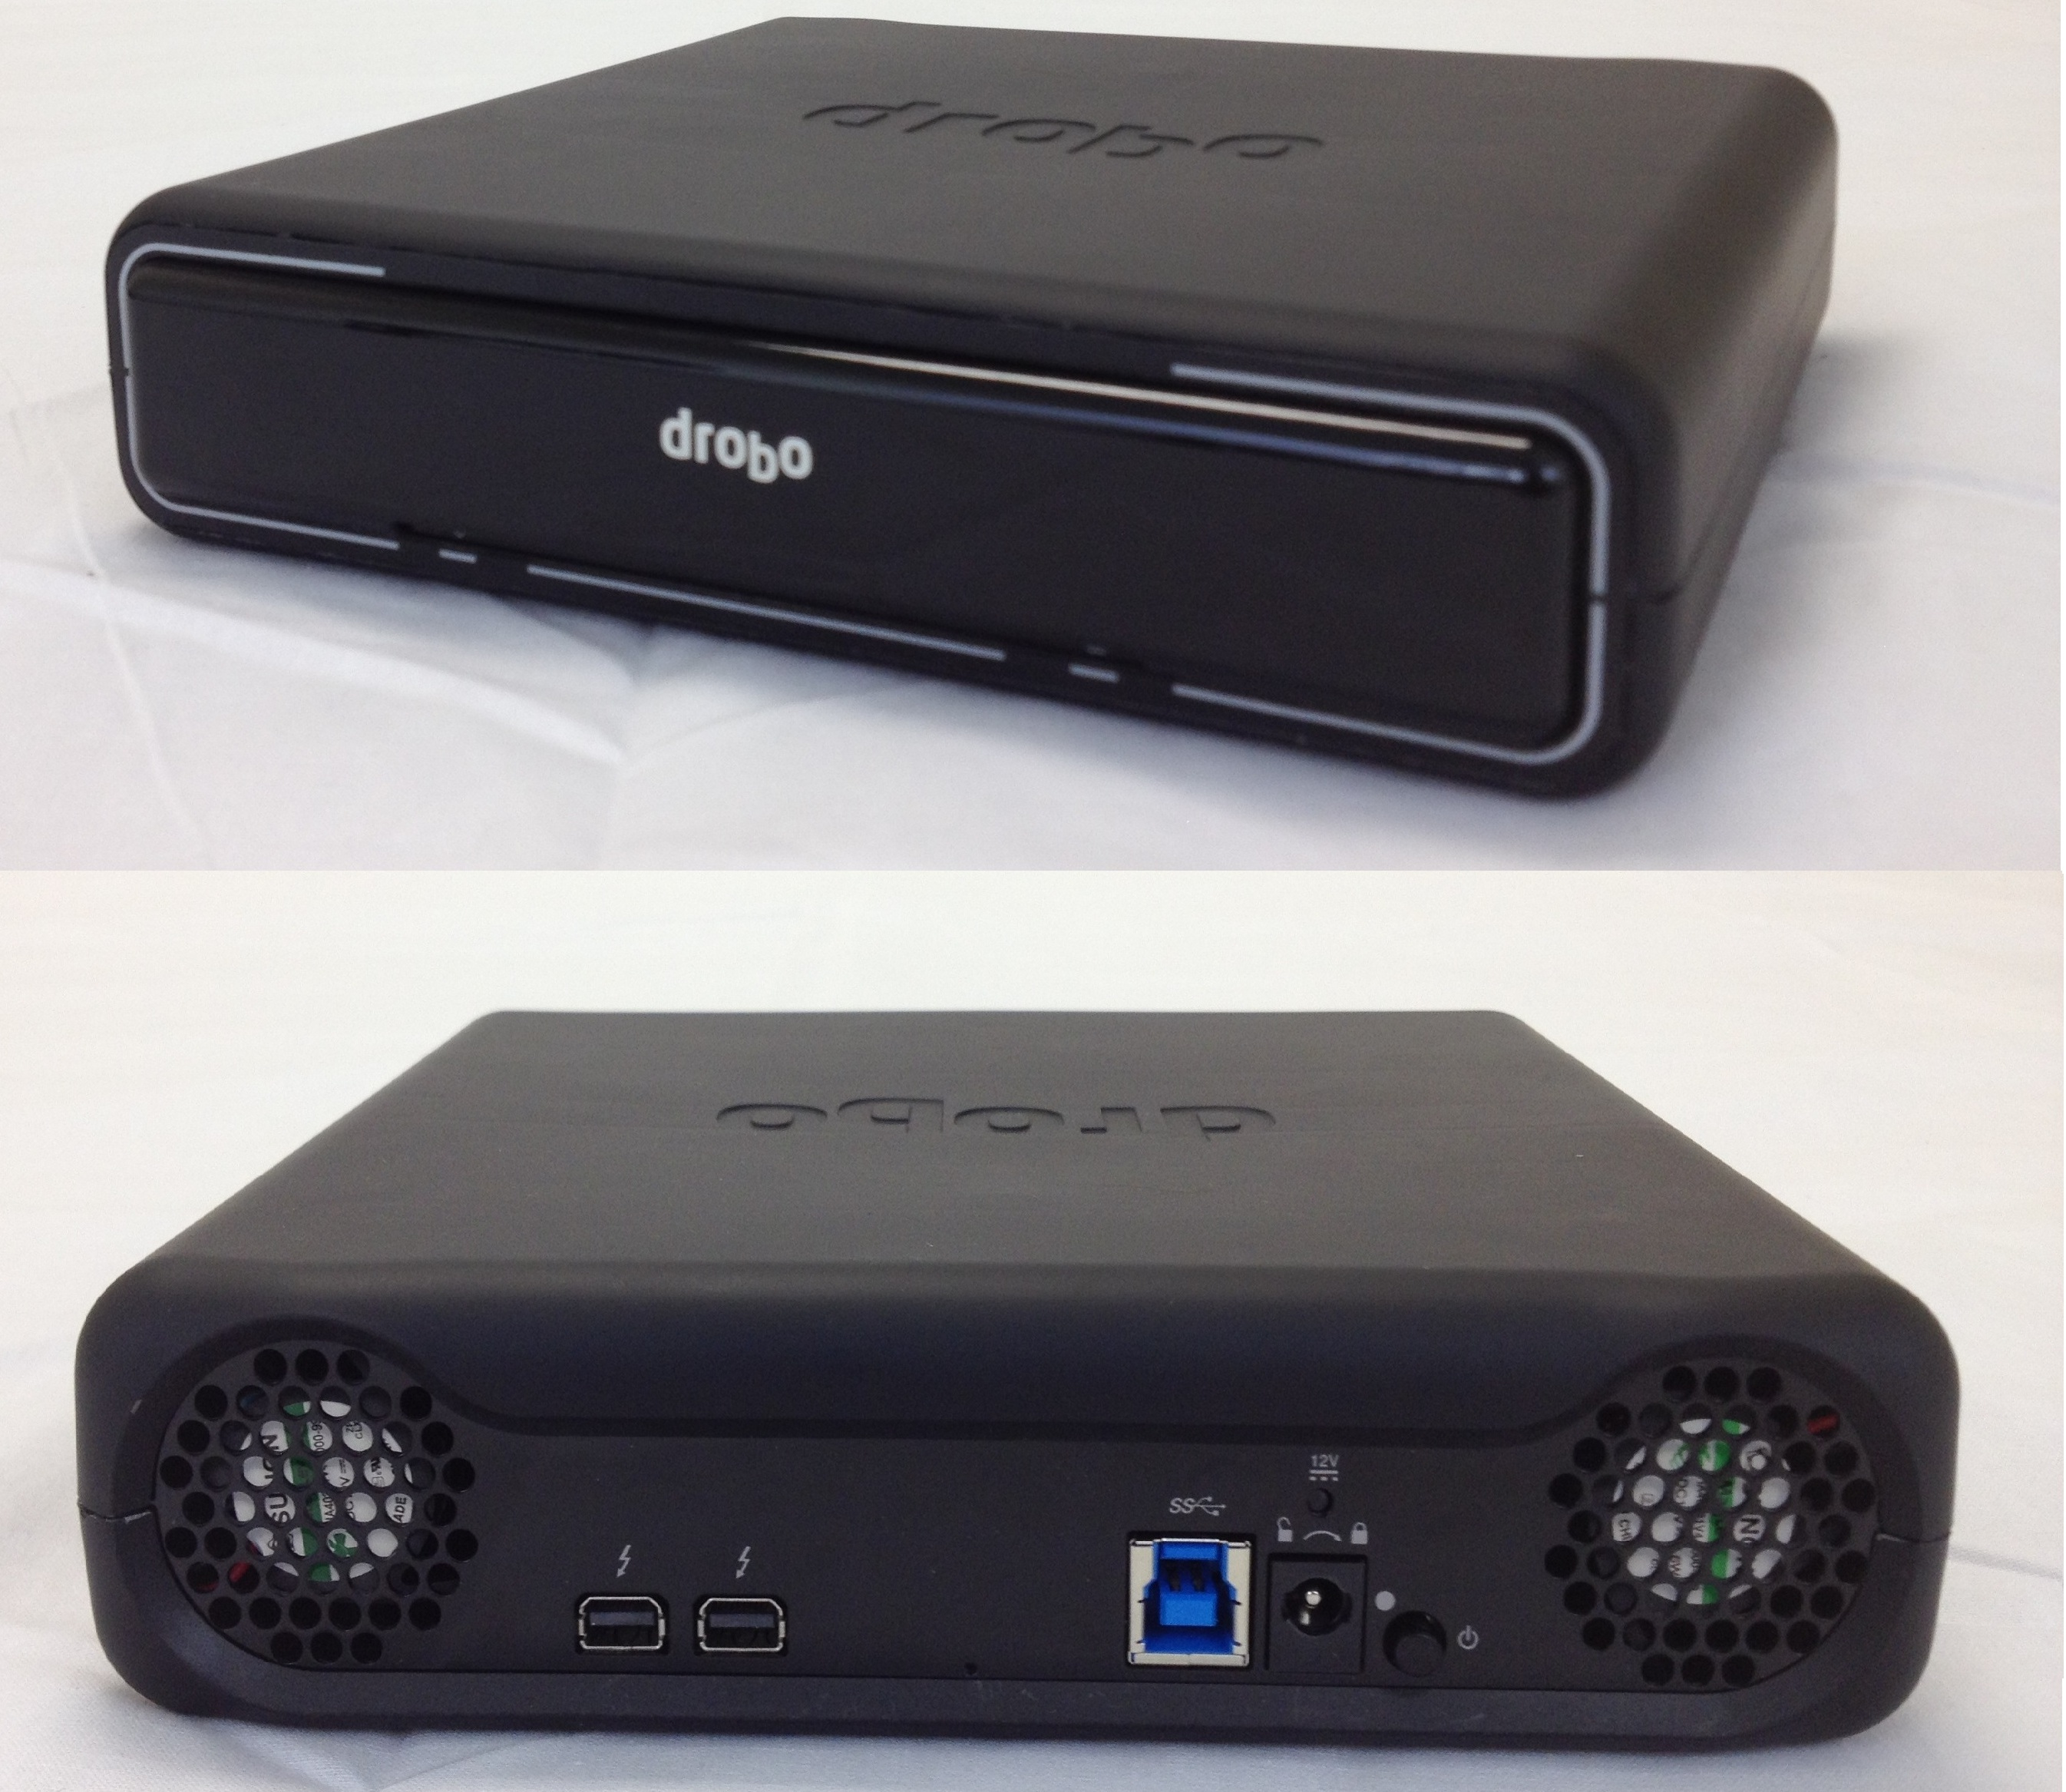 The front and back of the Drobo Mini, one of the first Thunderbolt storage devices on the market to also support USB 3.0.